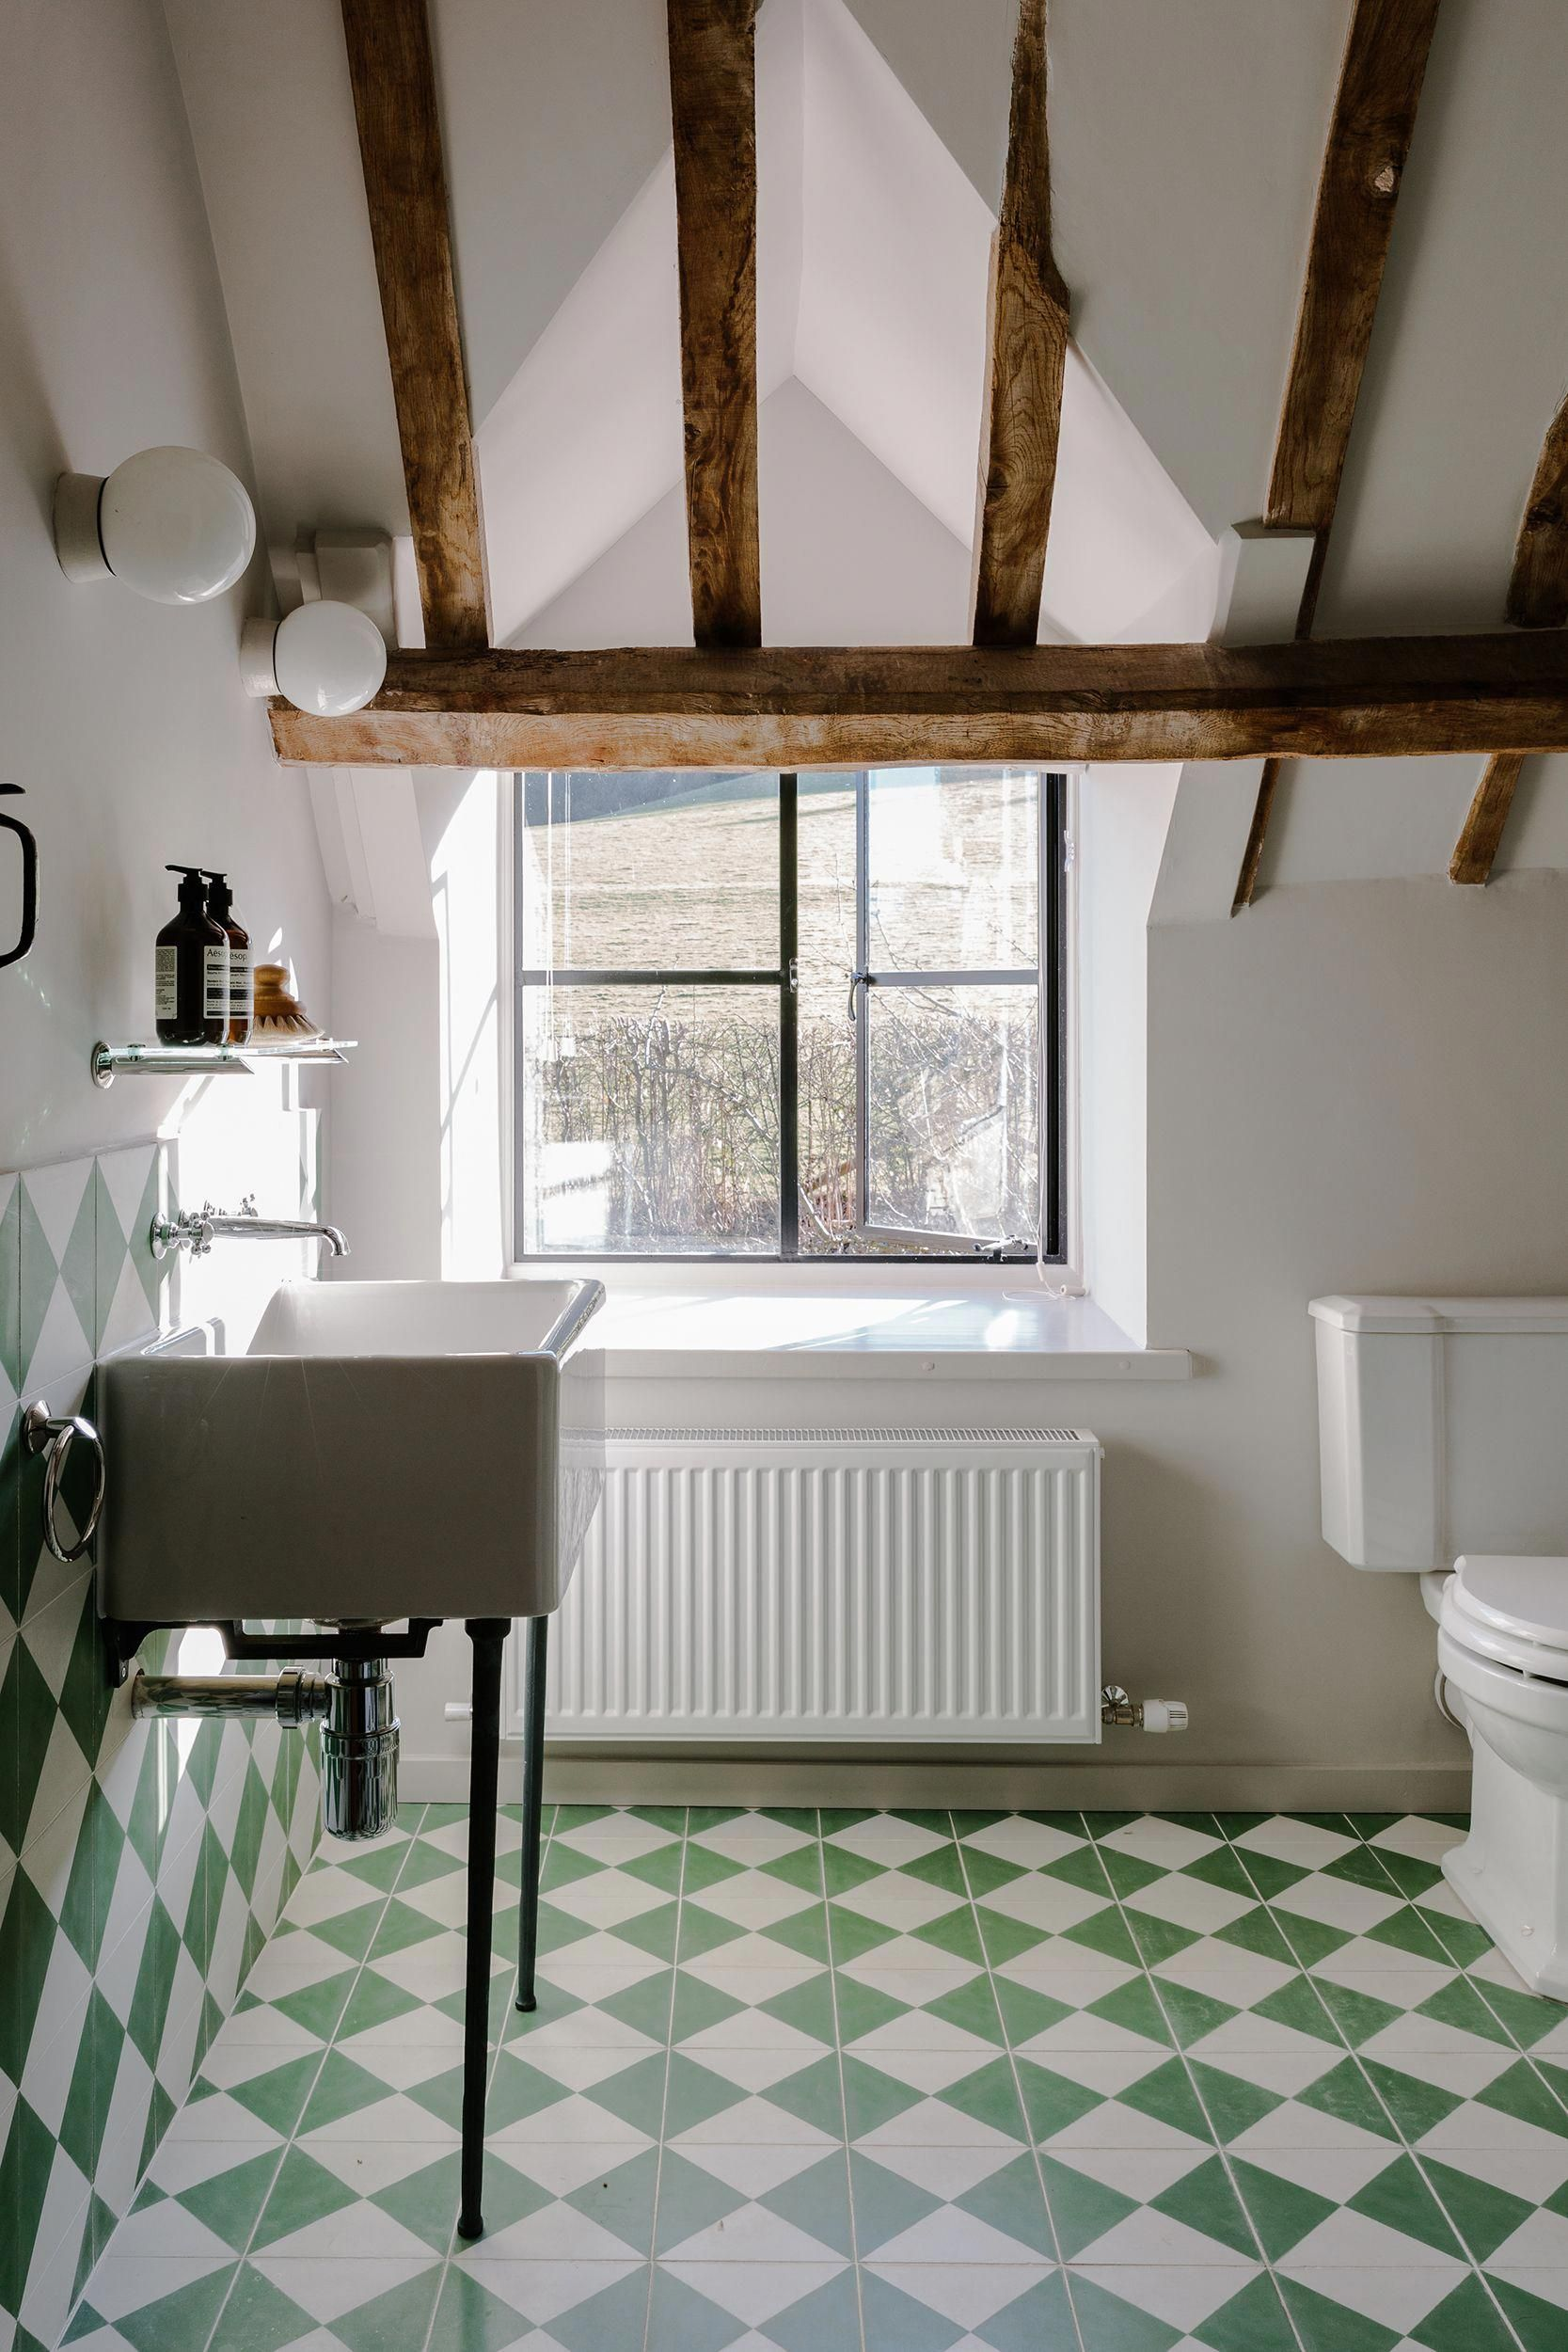 Beautiful country bathroom by Cotswoldfarmhideaway using Bert & May green churriana tiles, framed with rustic wood and decorated with understated white bathroom accessories. Credit: Photographer_ @_marinadenisova_Lighting_ @trainspotters.co.uk #bertandmay #tiles #countrybathroom #bathroom #rustic #wood #whitebathroom